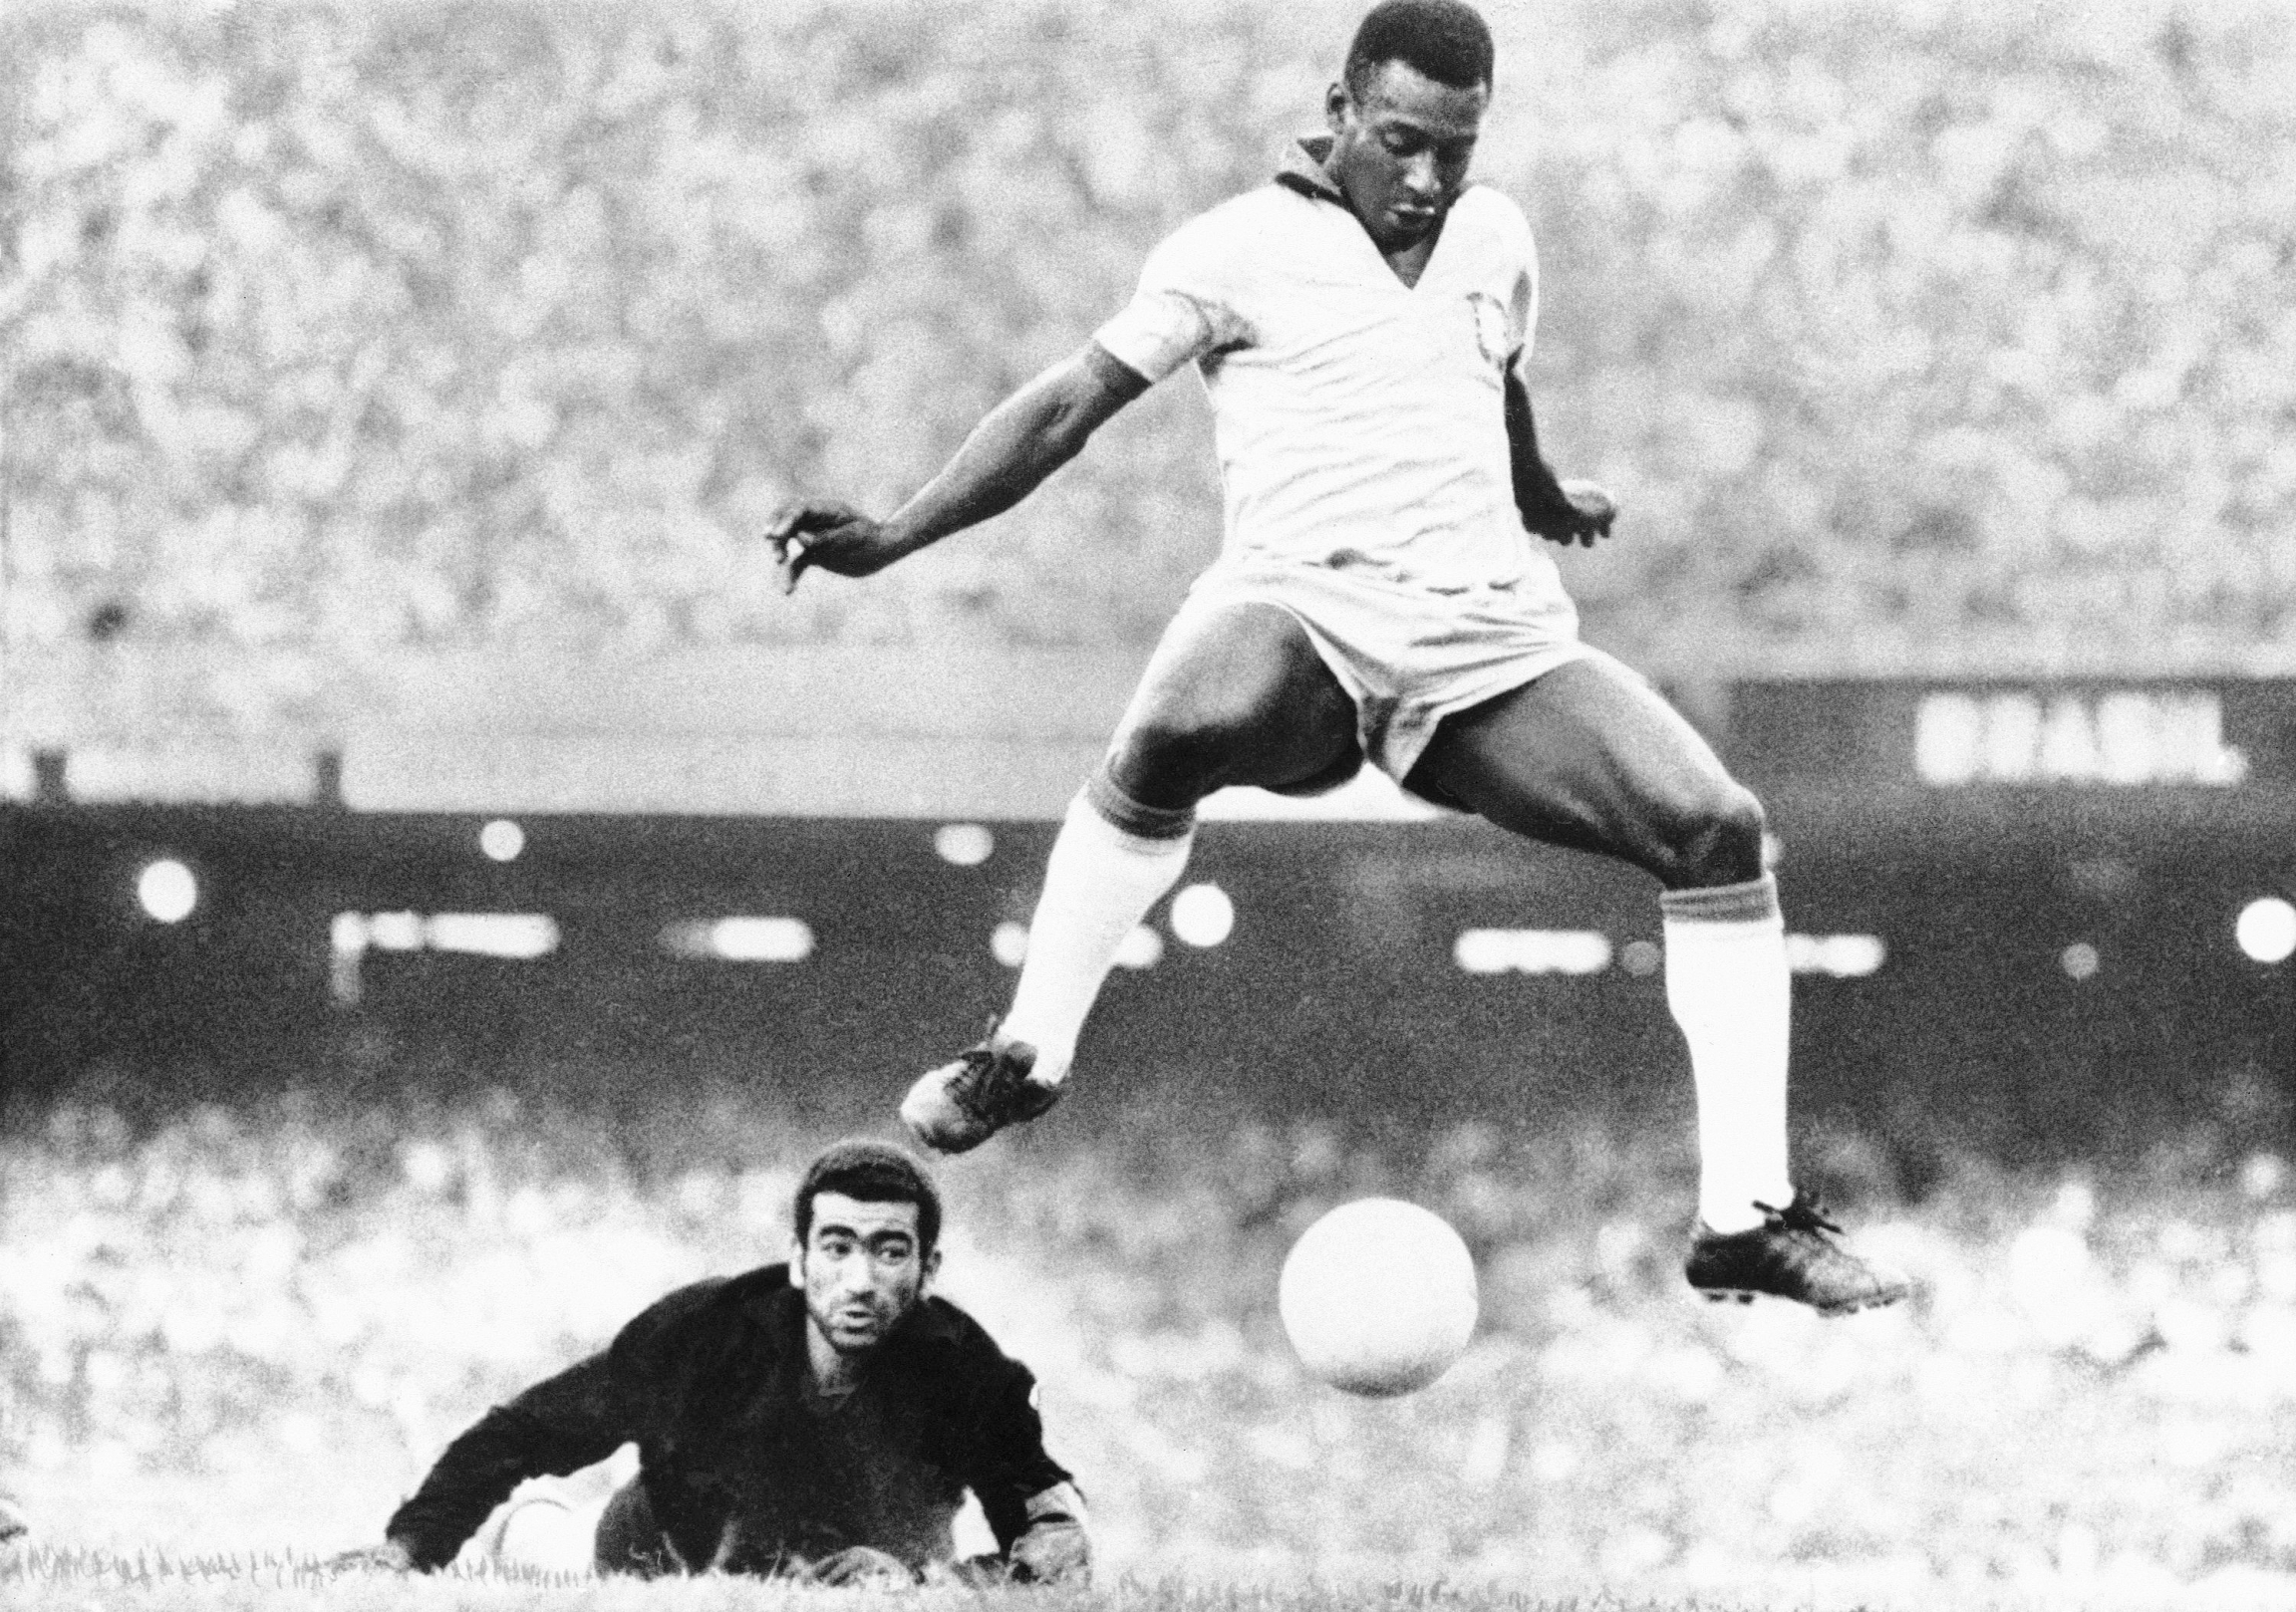 Black-and-white photo of Pele getting ready to shoot a soccer ball into the net